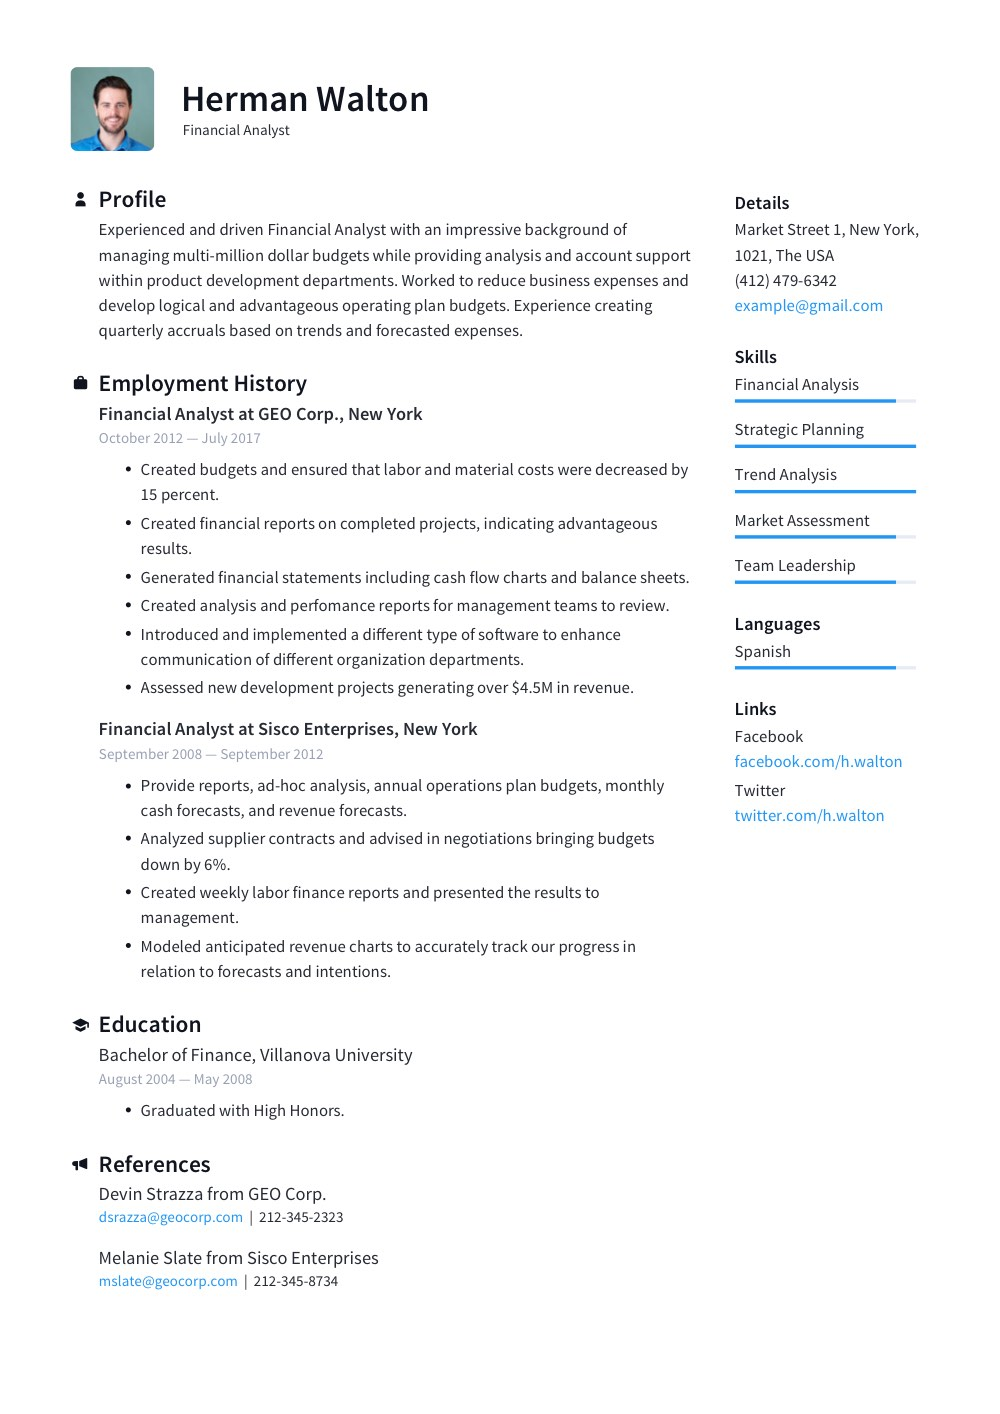 Free Resume Templates Badass Career Resources For 2019